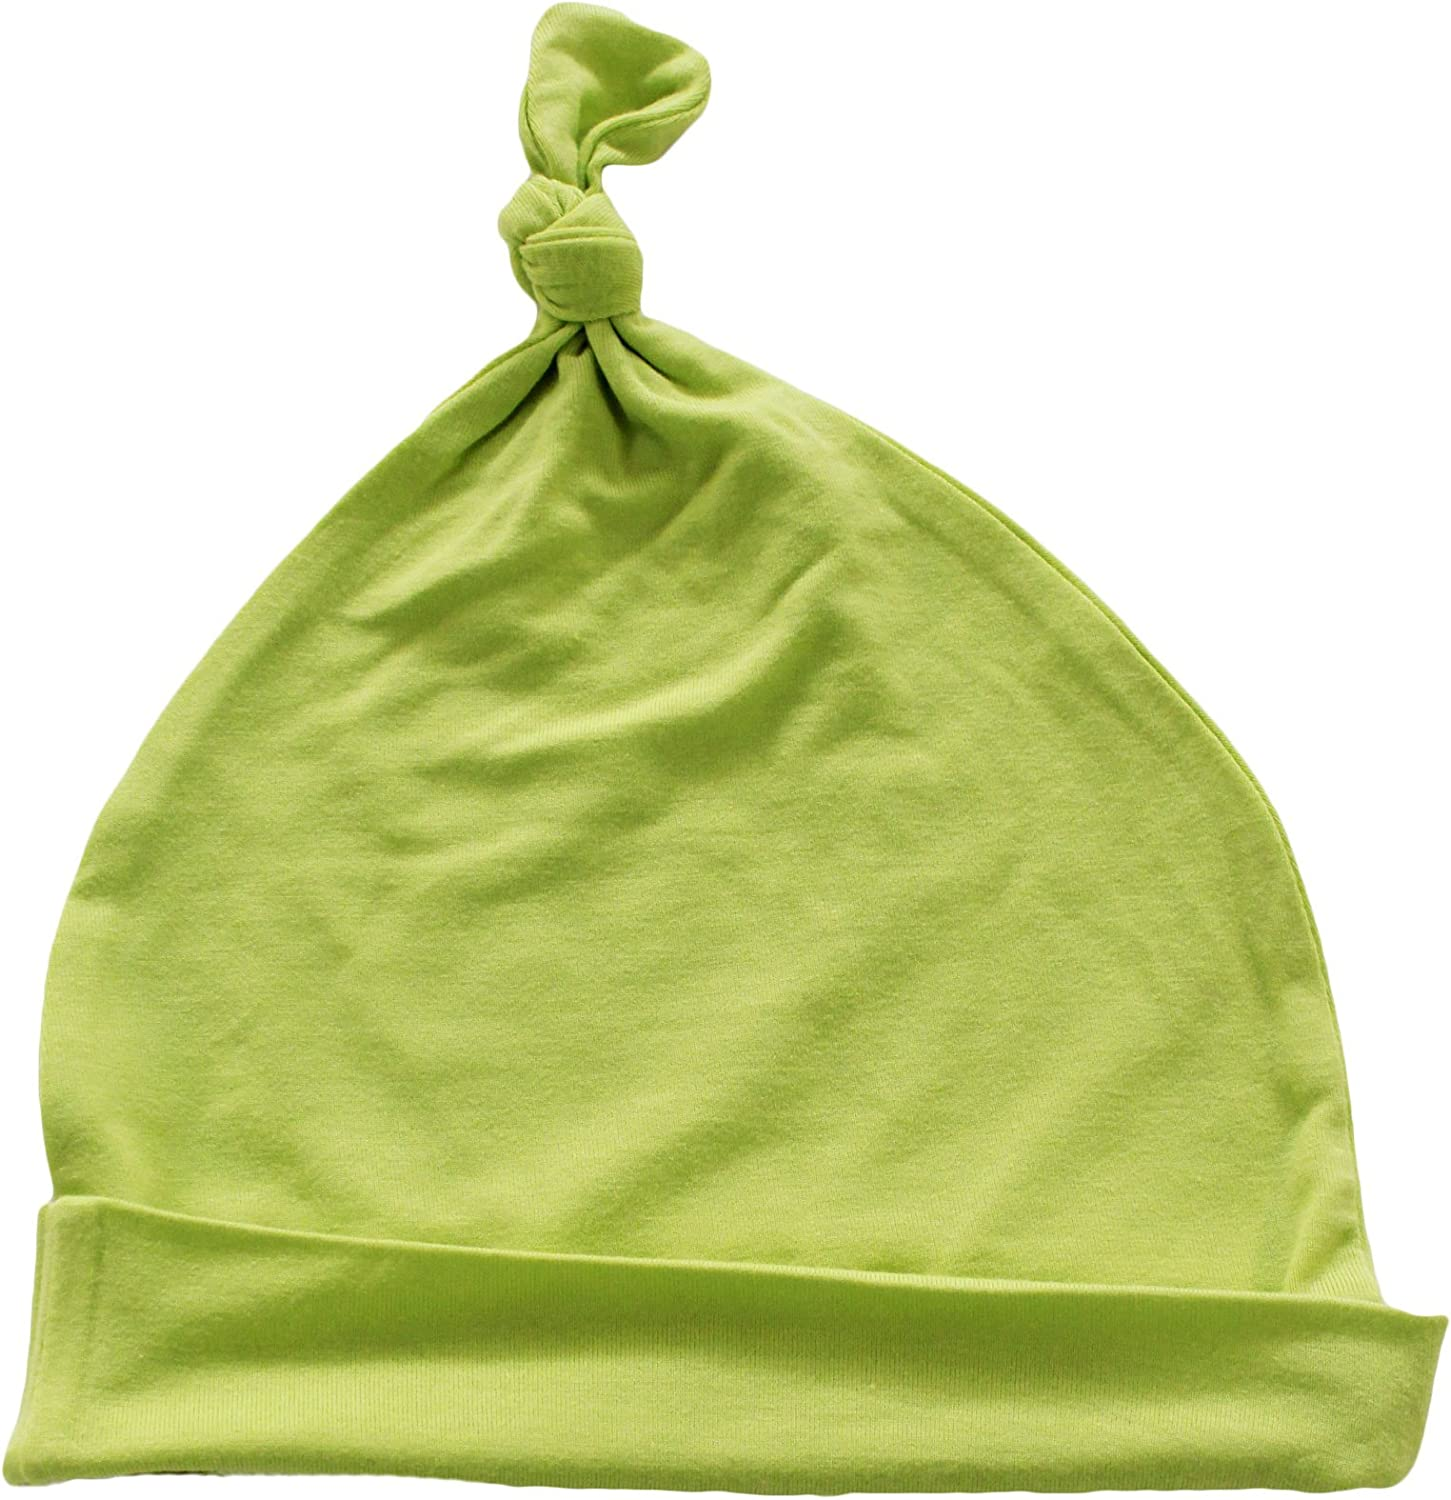 KYTE BABY Unisex Bamboo Rayon Baby Beanie Soft Knotted Cap